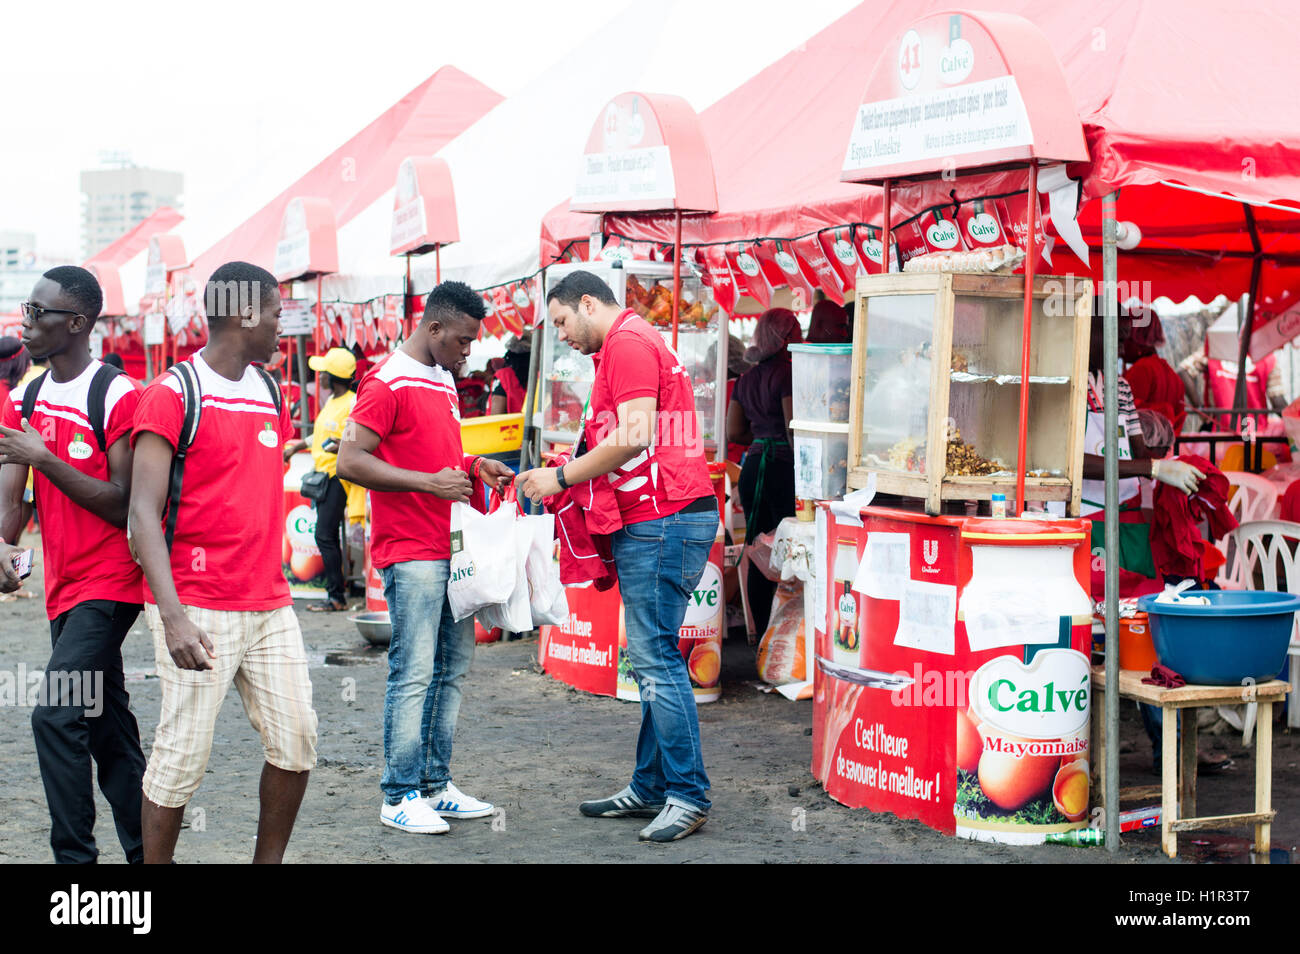 -Abidjan, Ivory Coast, September 11, 2016: Festival of Abidjan grilled with red decorations and sponsors color . - Stock Image